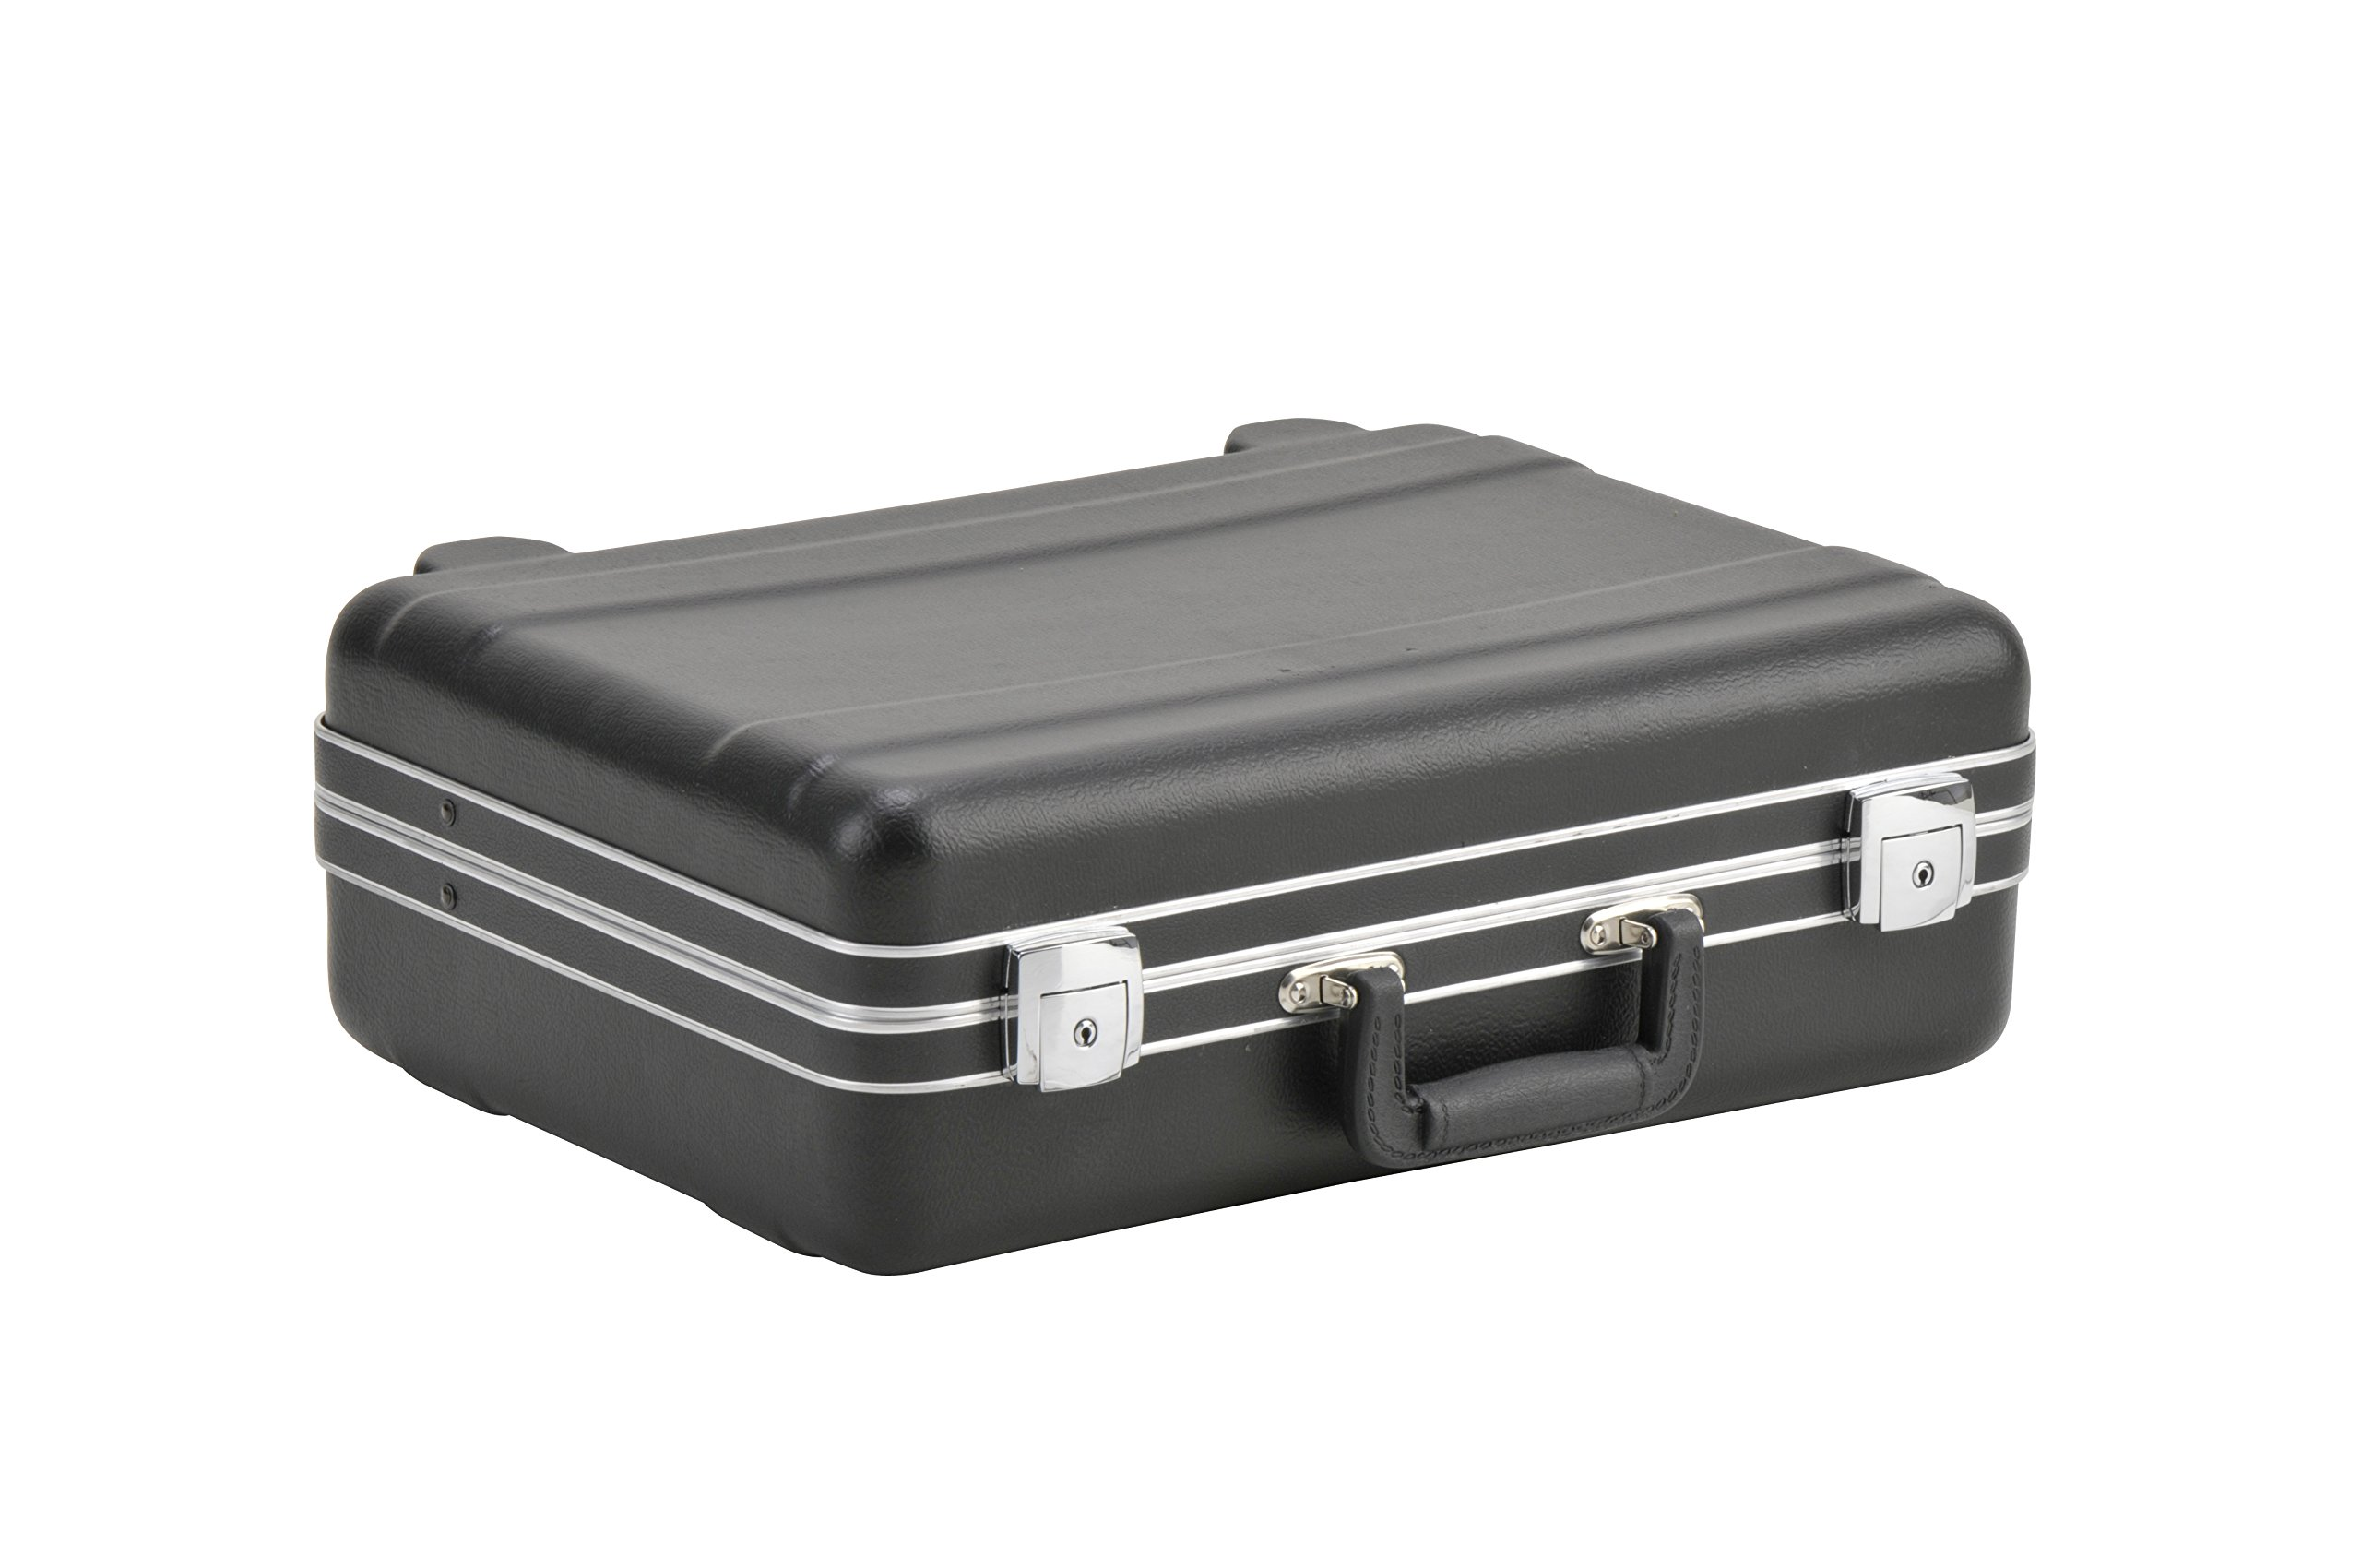 SKB Equipment Case, 17 3/8-Inch X 13 3/8 -Inch